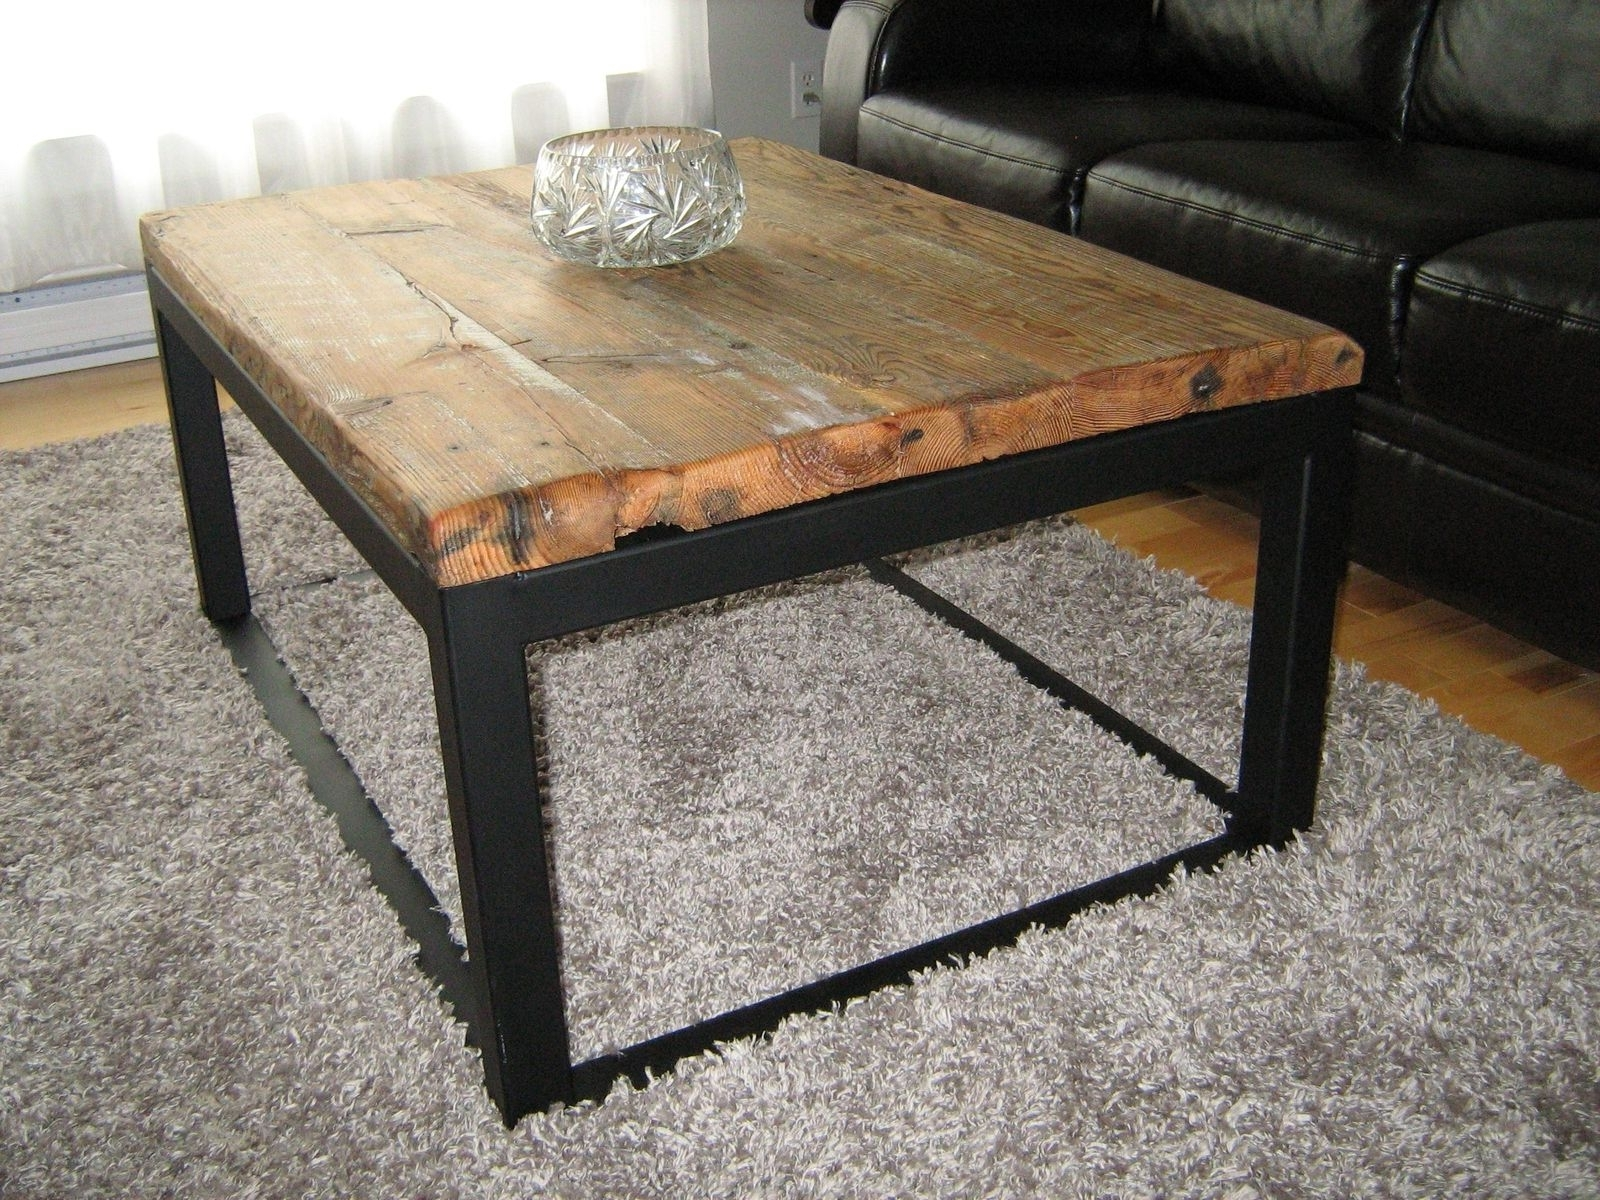 Trendy Reclaimed Elm Cast Iron Coffee Tables Throughout Reclaimed Wood And Iron Coffee Table – Coffee Drinker (View 15 of 20)